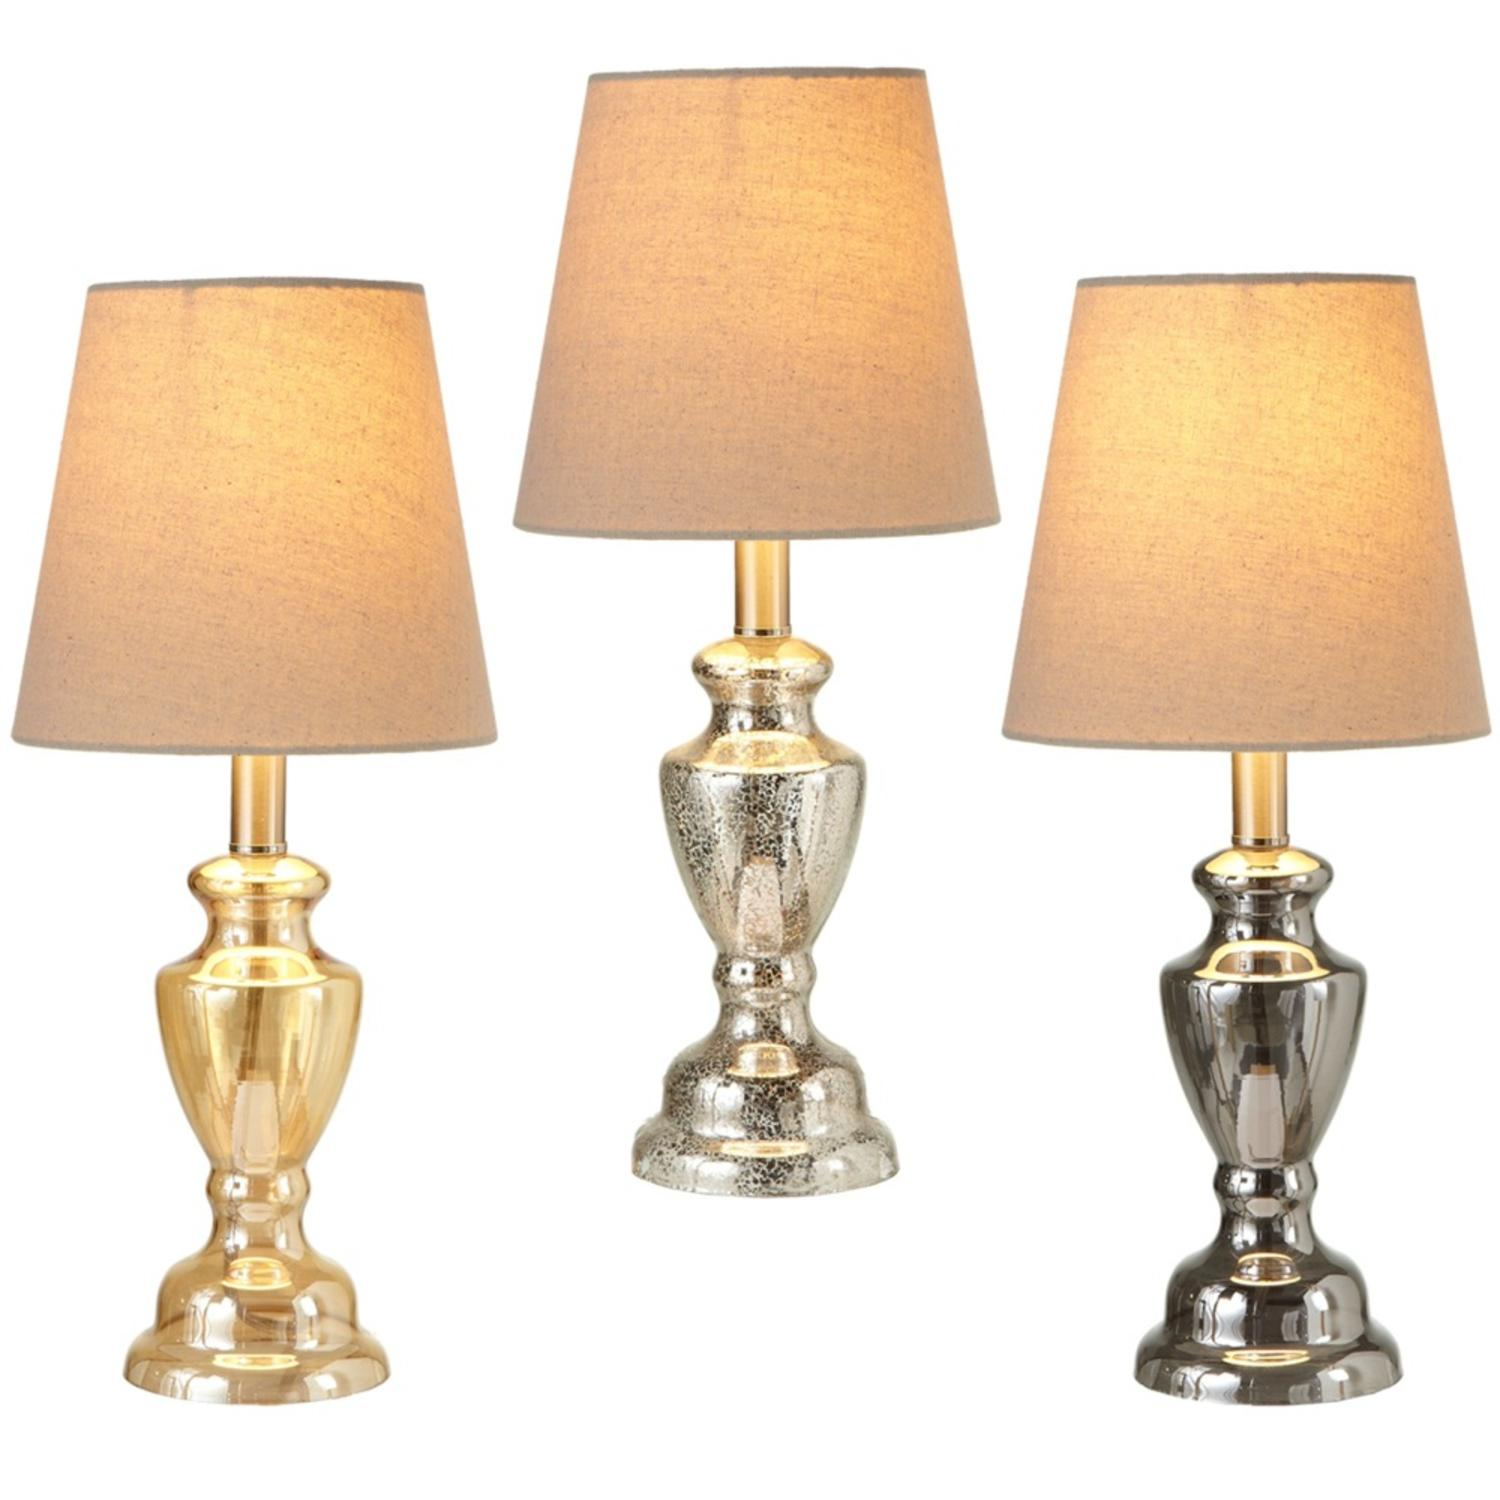 Set of 3 Gold and Silver Luster Urn Accent Table Lamp with Beige Round Shade 17""